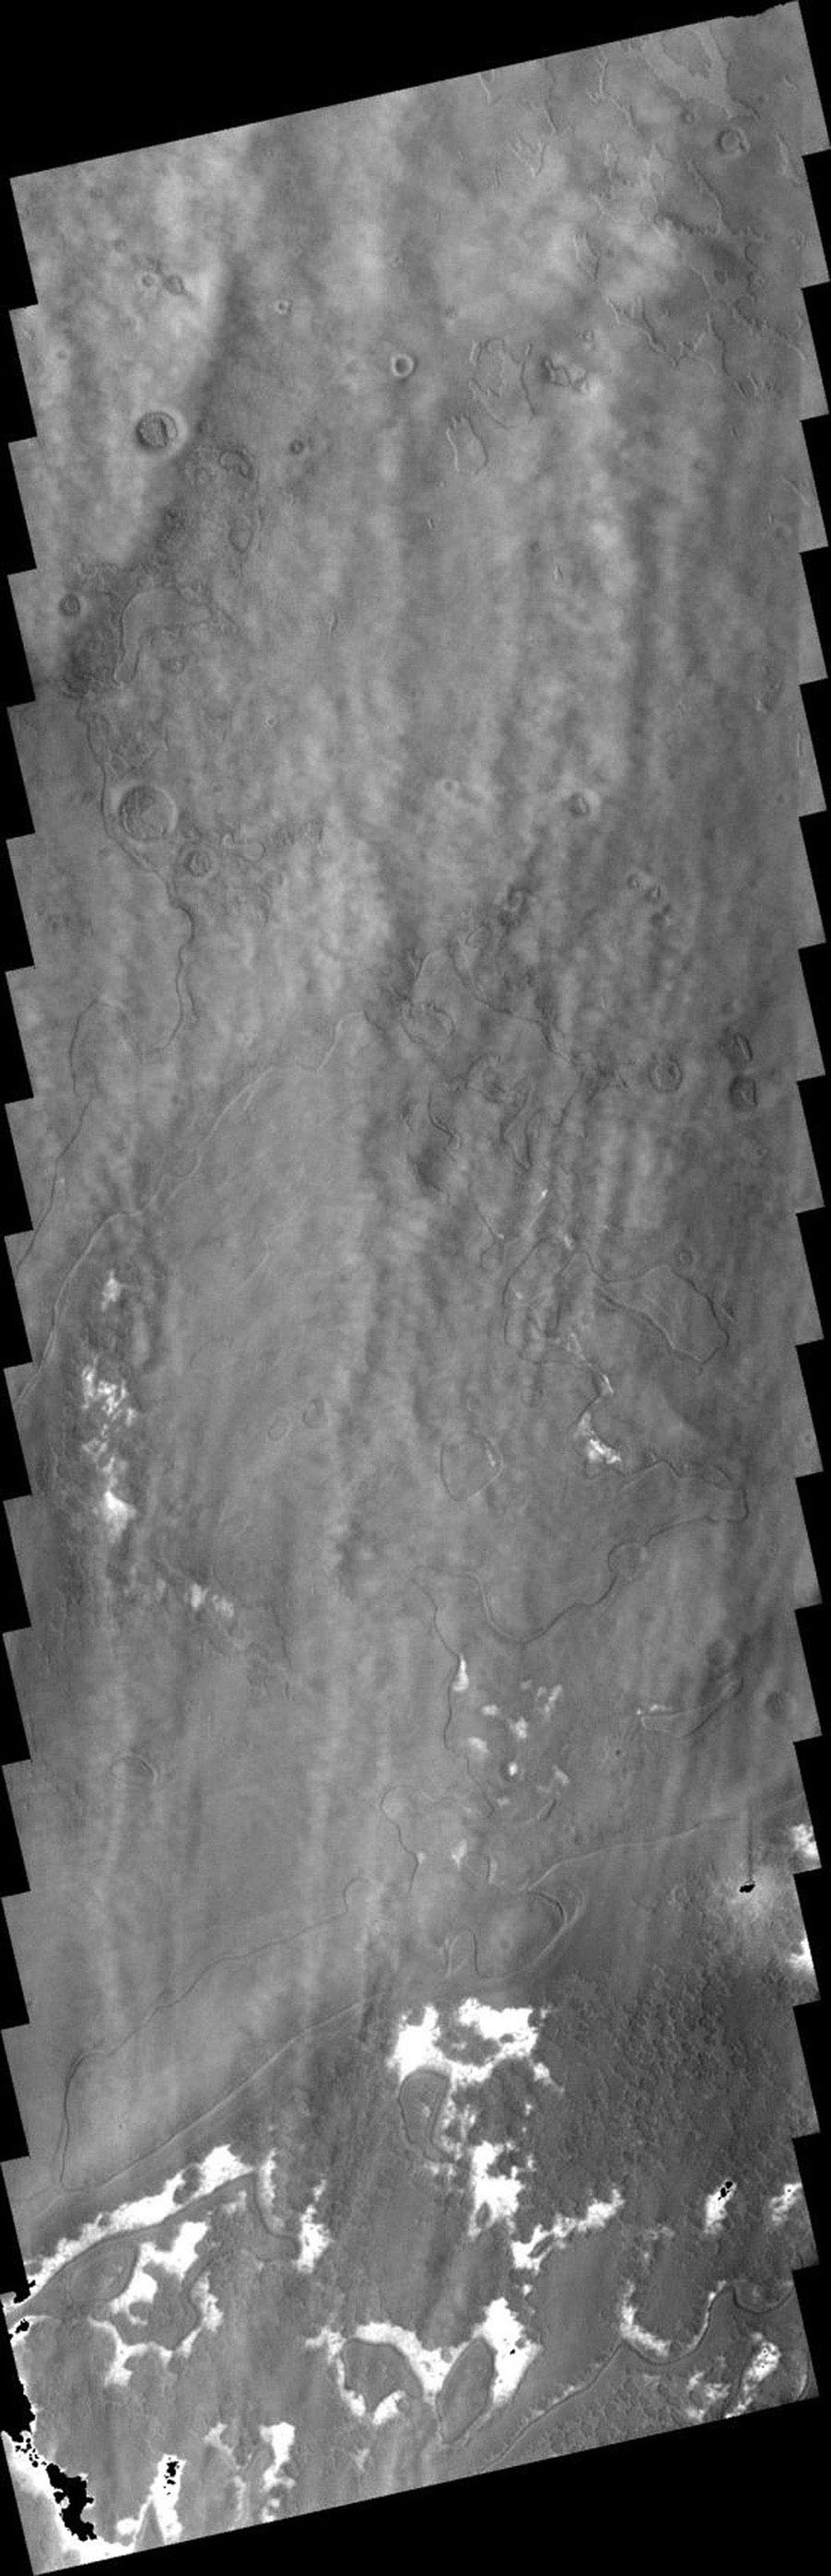 This image from NASA's 2001 Mars Odyssey spacecraft shows a system of clouds just off the margin of the South Polar cap on Mars. Taken during the summer season, these clouds contain both water-ice and dust.